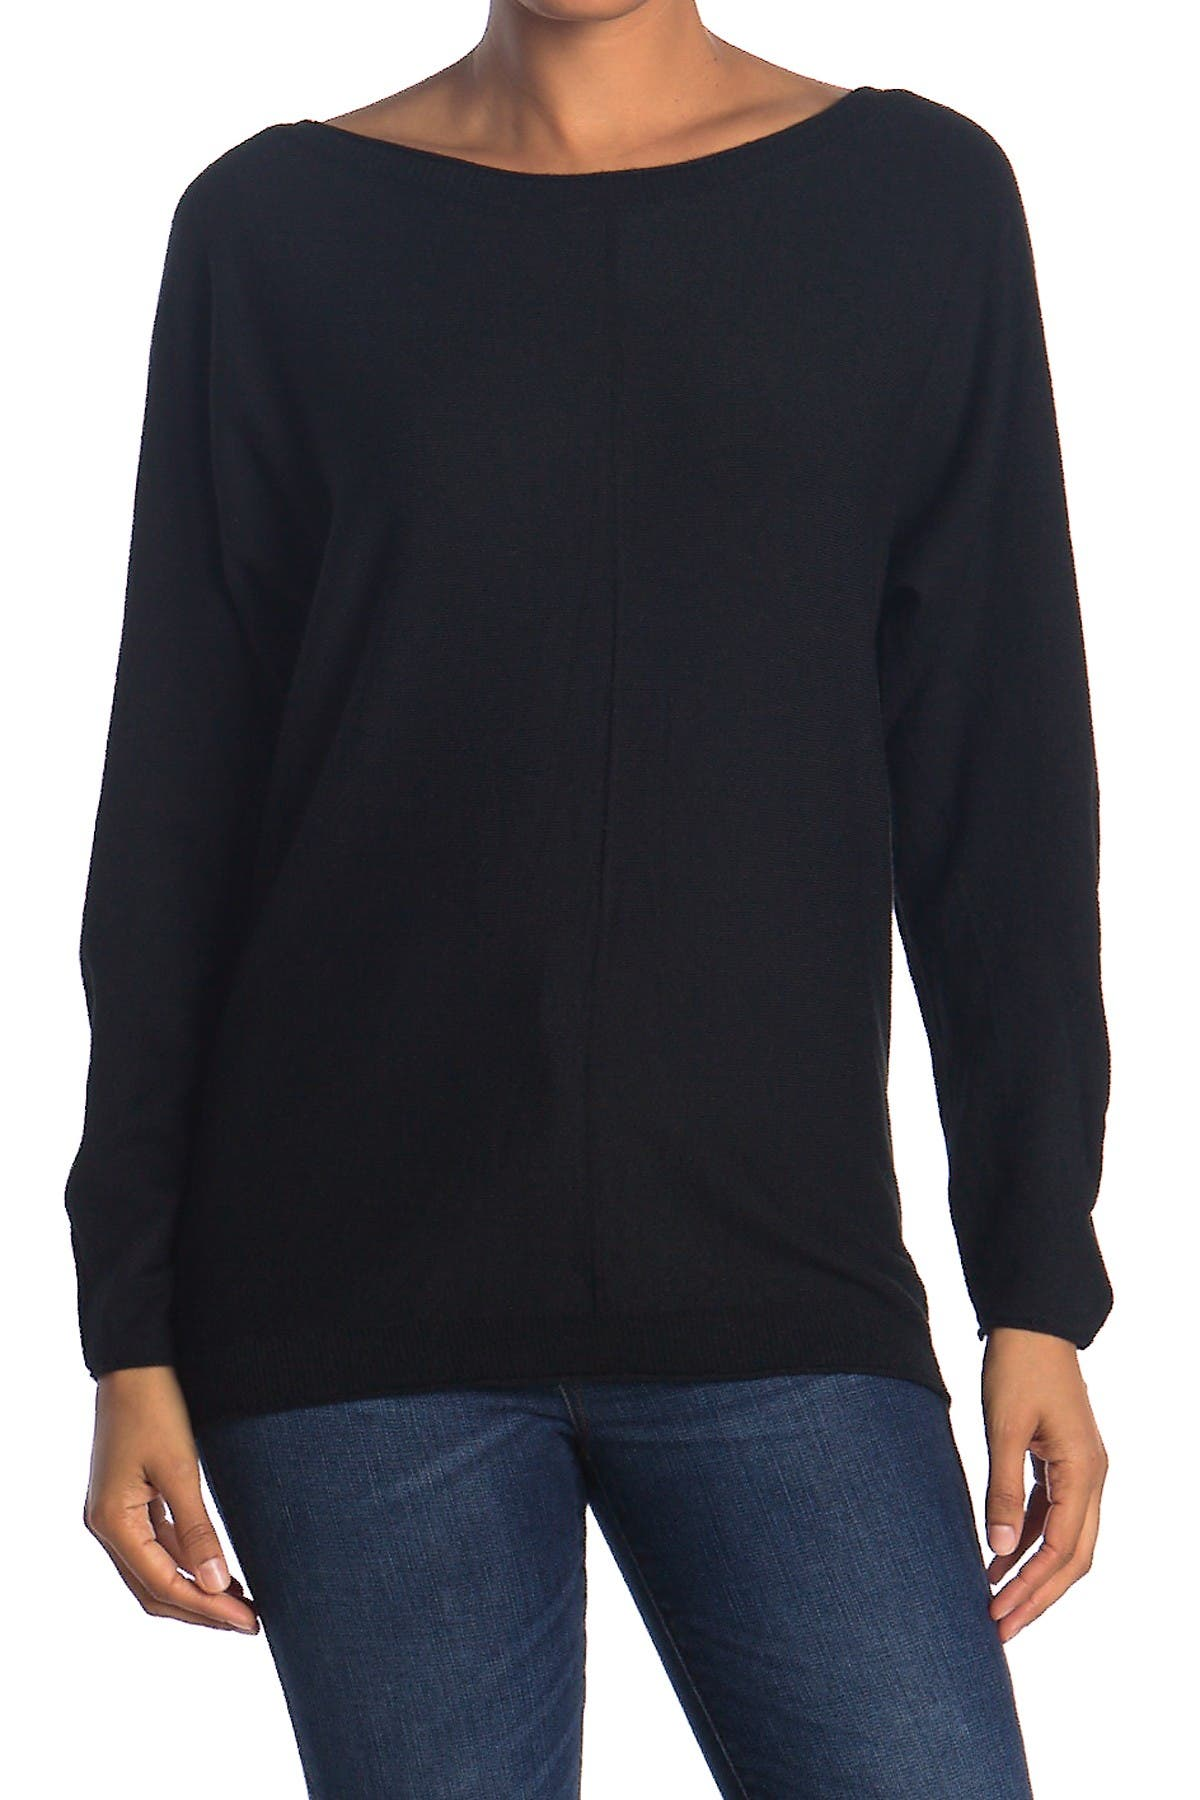 Image of Cyrus Boatneck Dolman Pullover Sweater